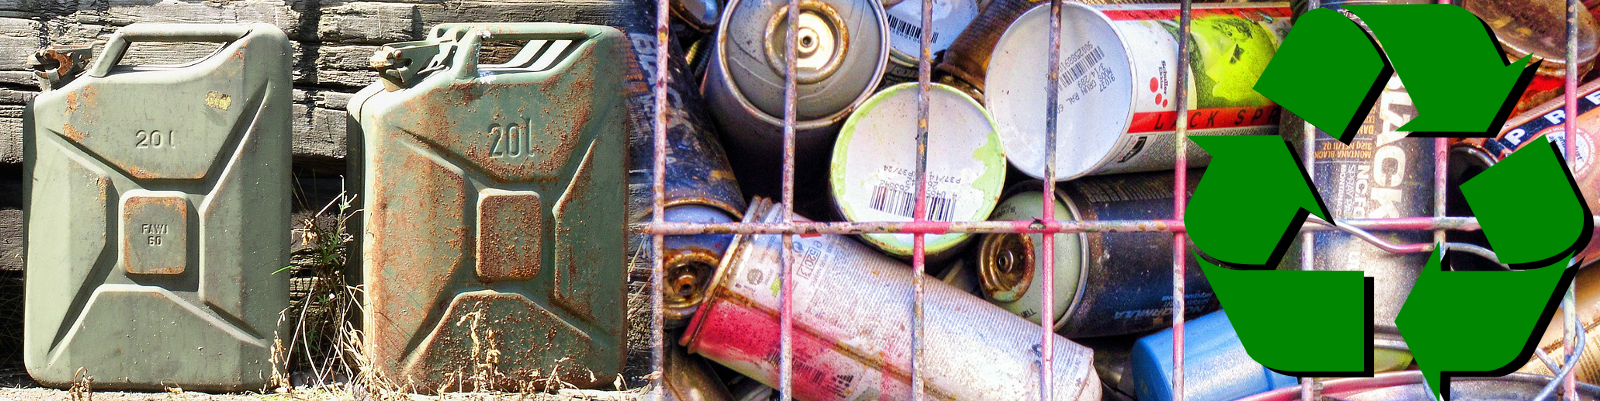 slide:Household Hazardous Waste Collection